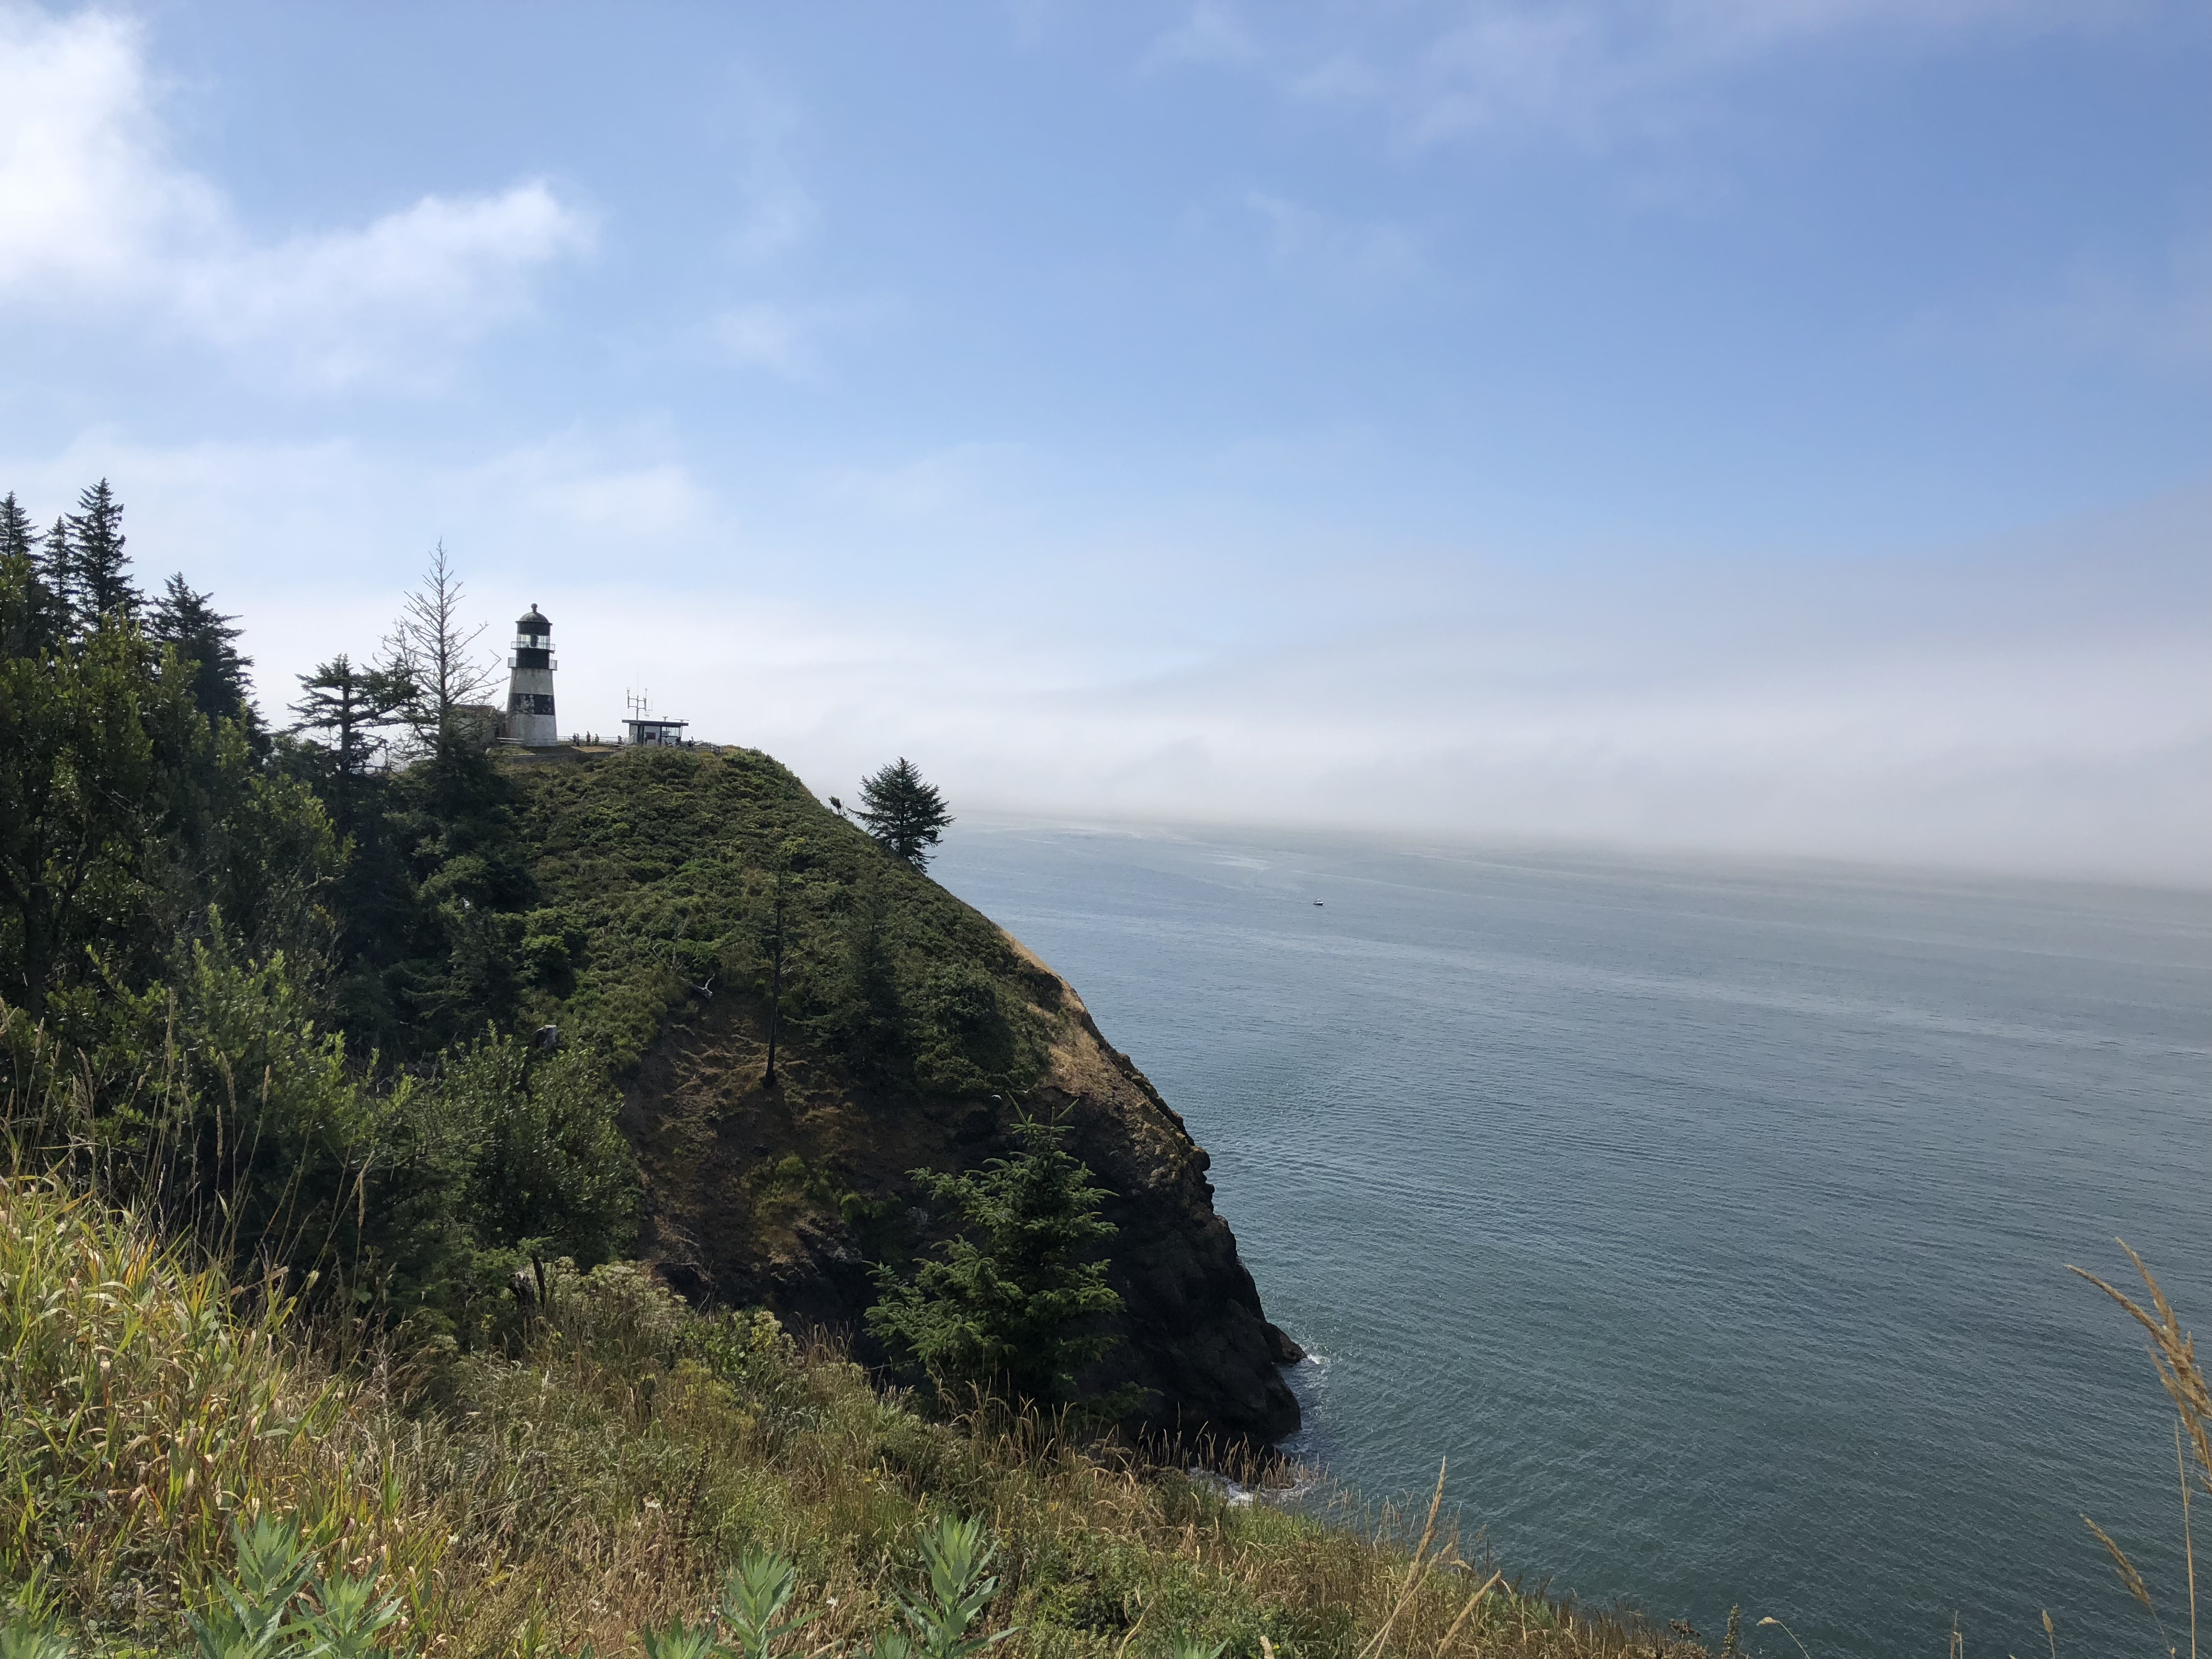 We Spent One Of The Days Exploring Some Long Beach Peninsula In Washington